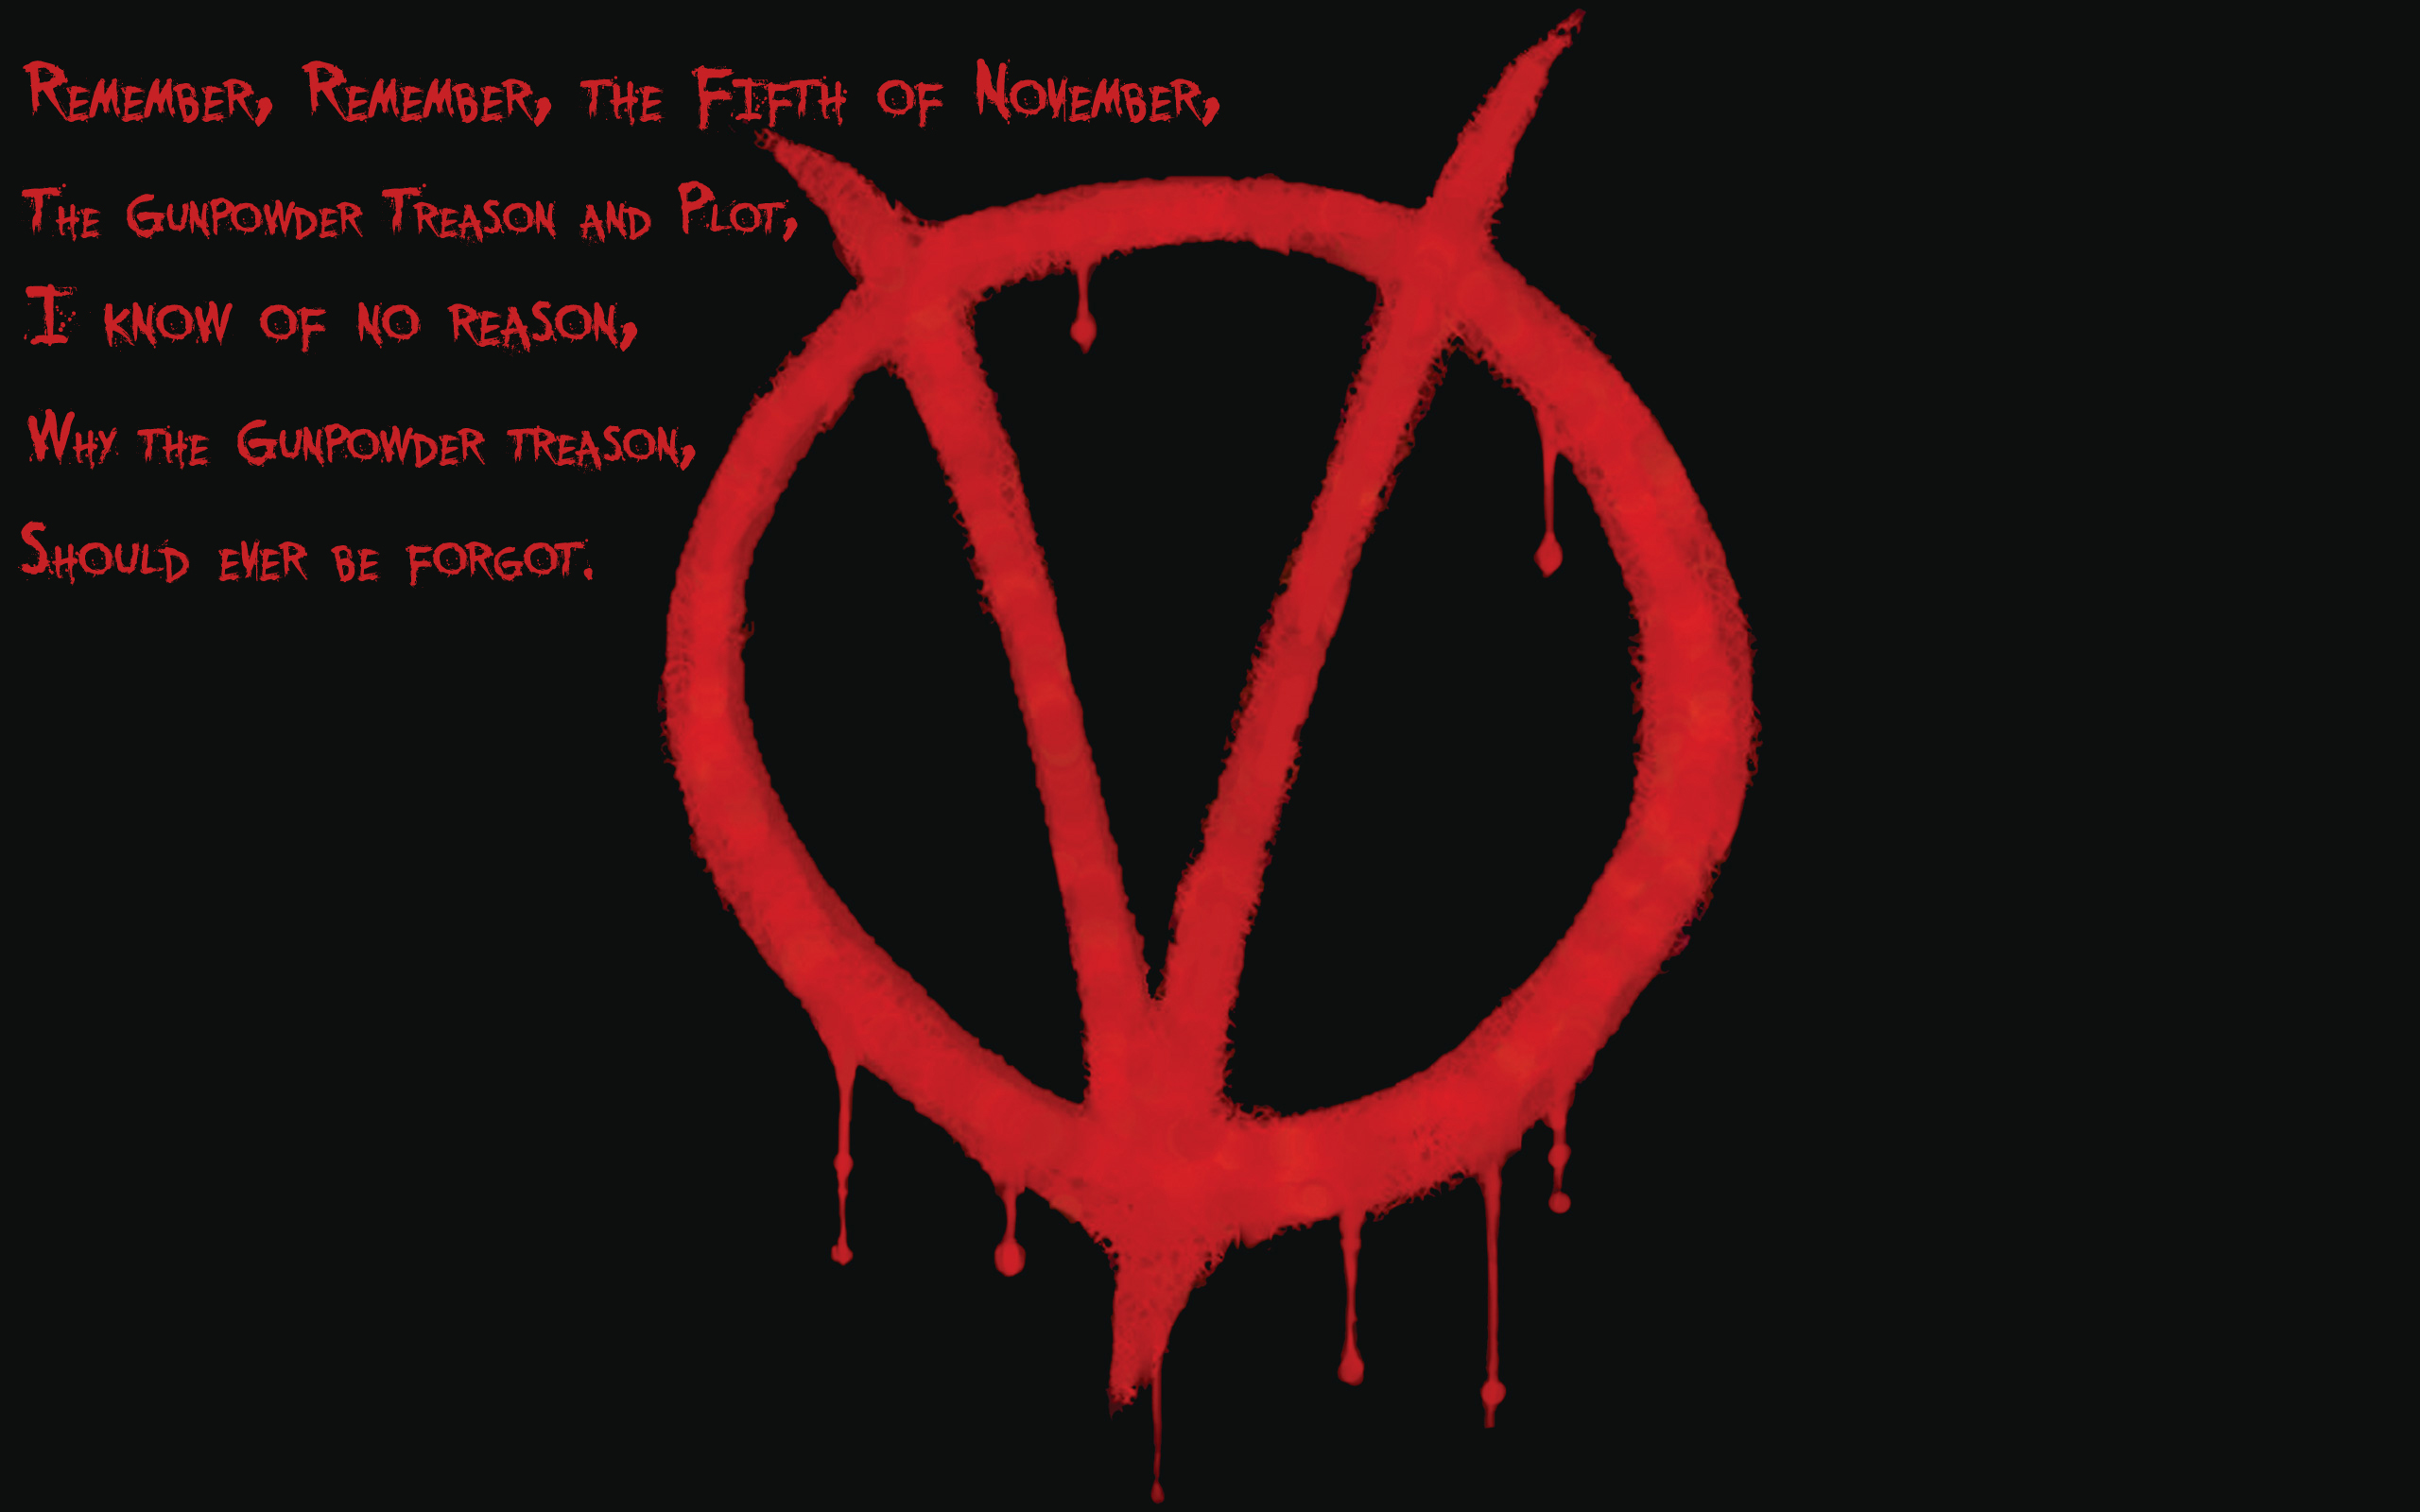 v-for-vendetta-remember-remember